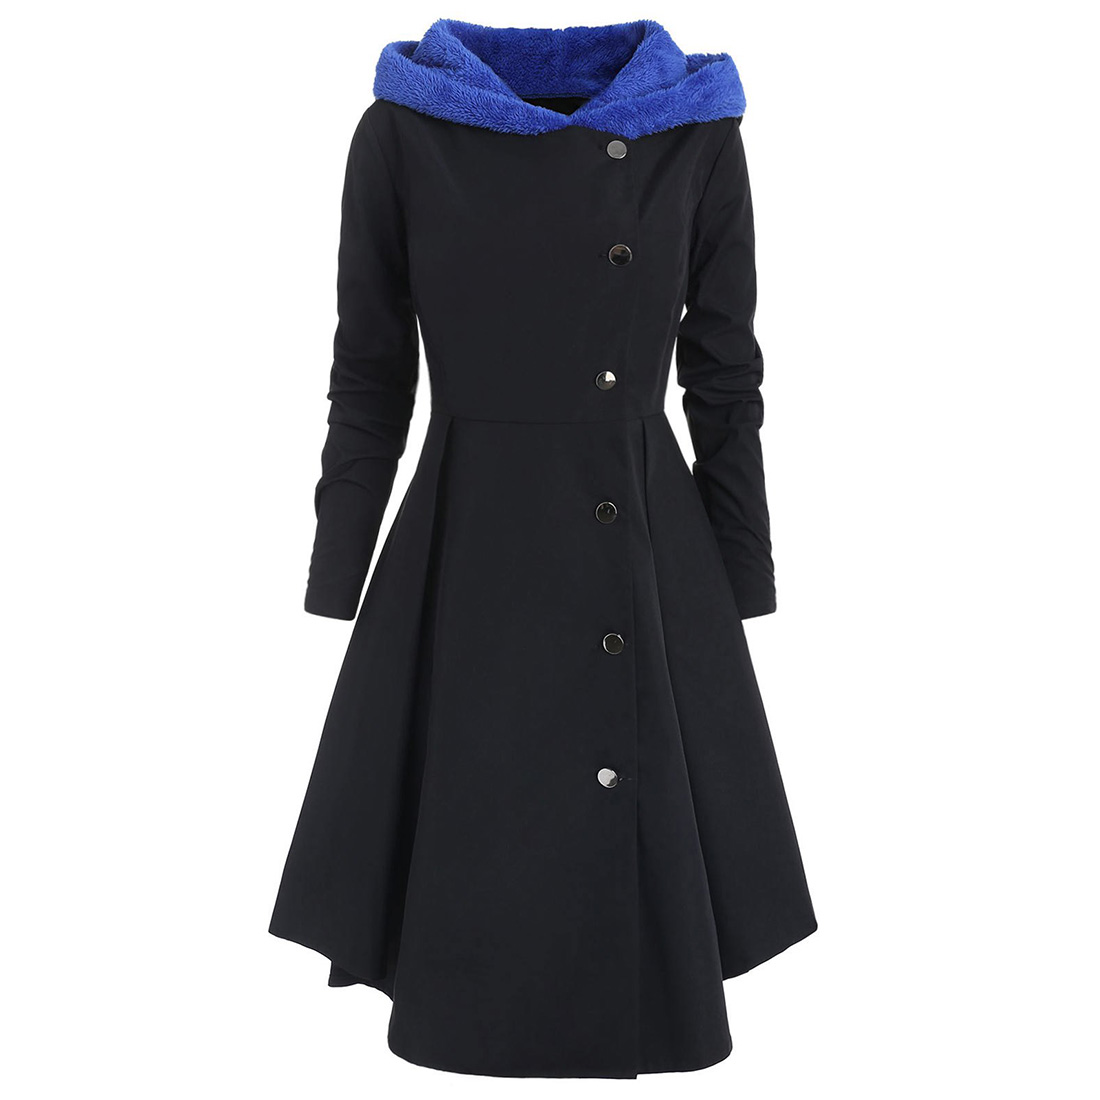 Thicken Vintage High Waist Soft Warm Shopping Daily Solid Casual Long Women Coat Button Hooded Slim